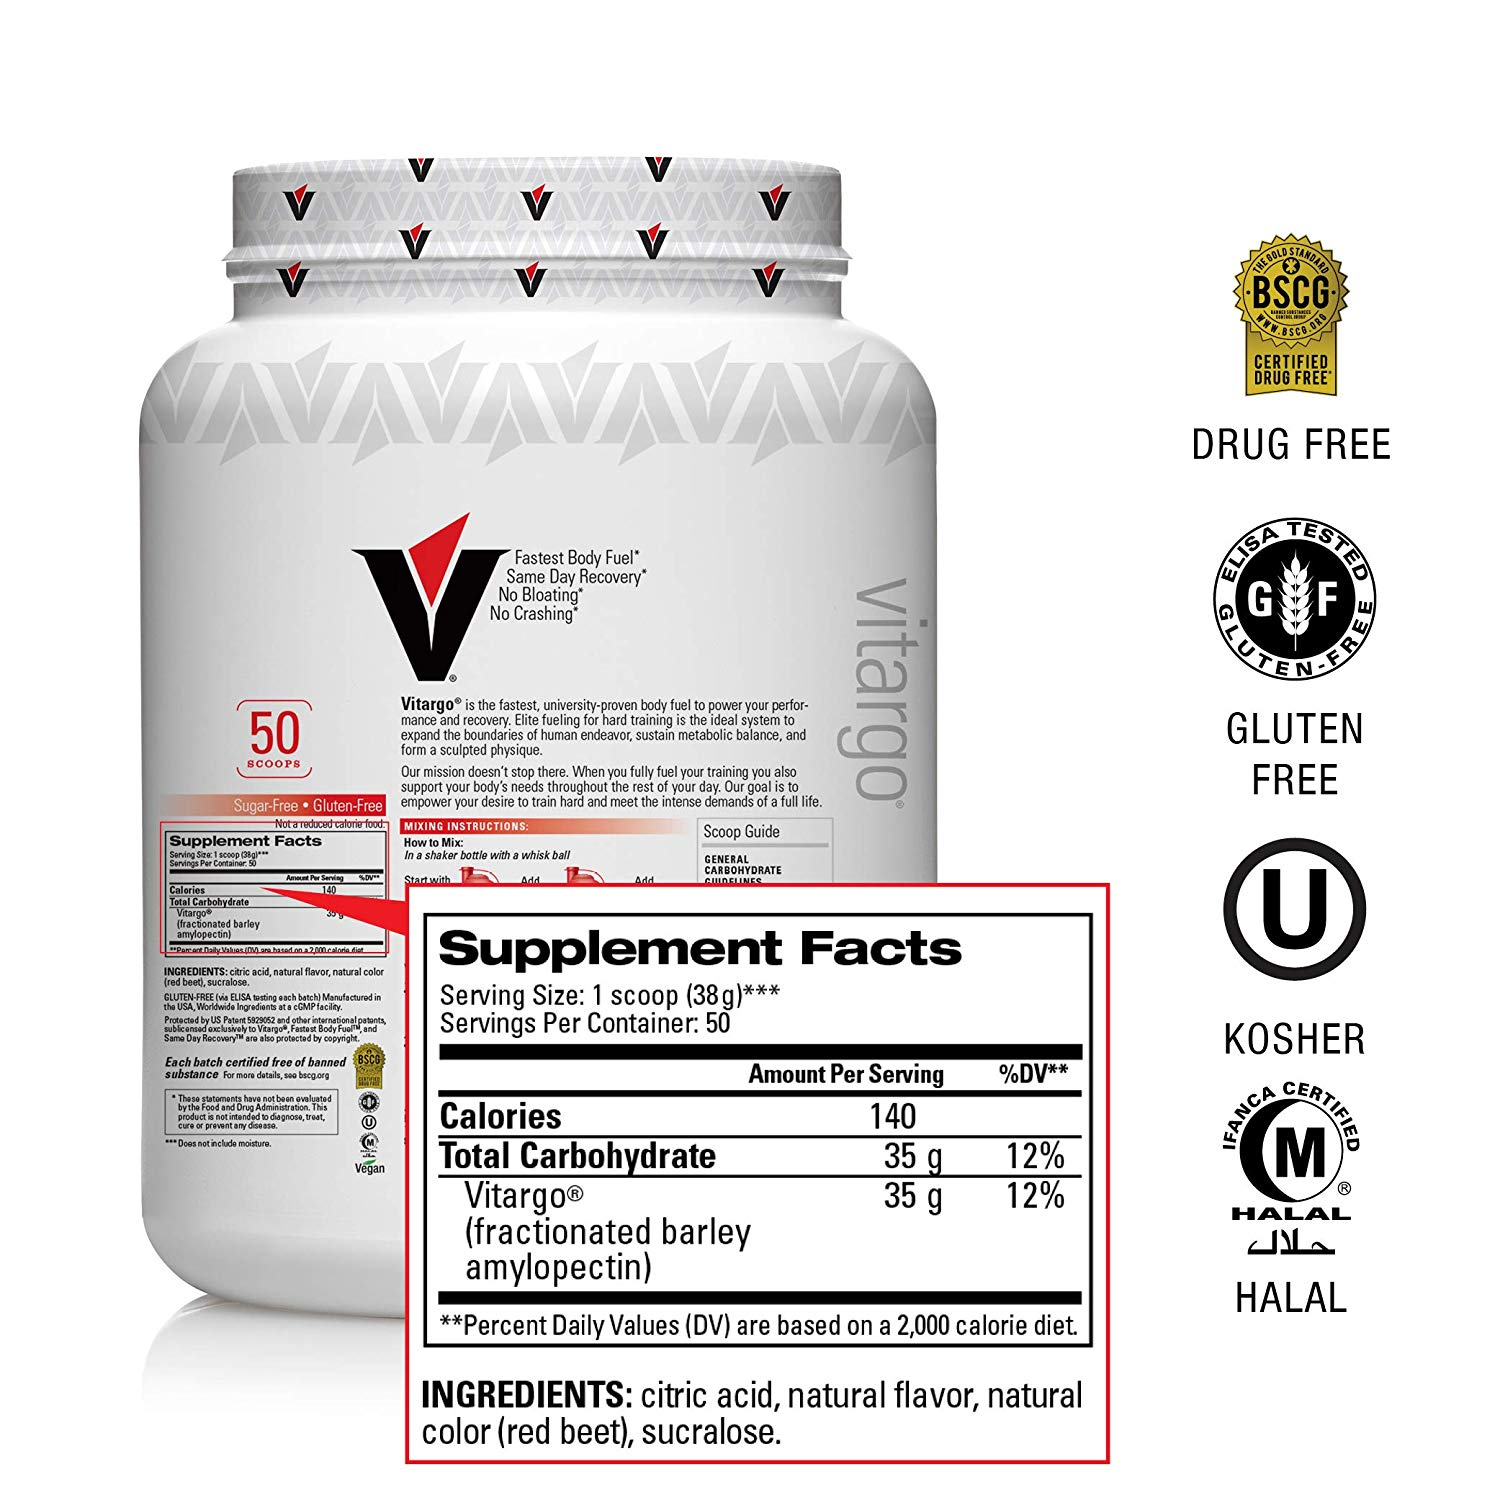 Vitargo Carbohydrate Powder back